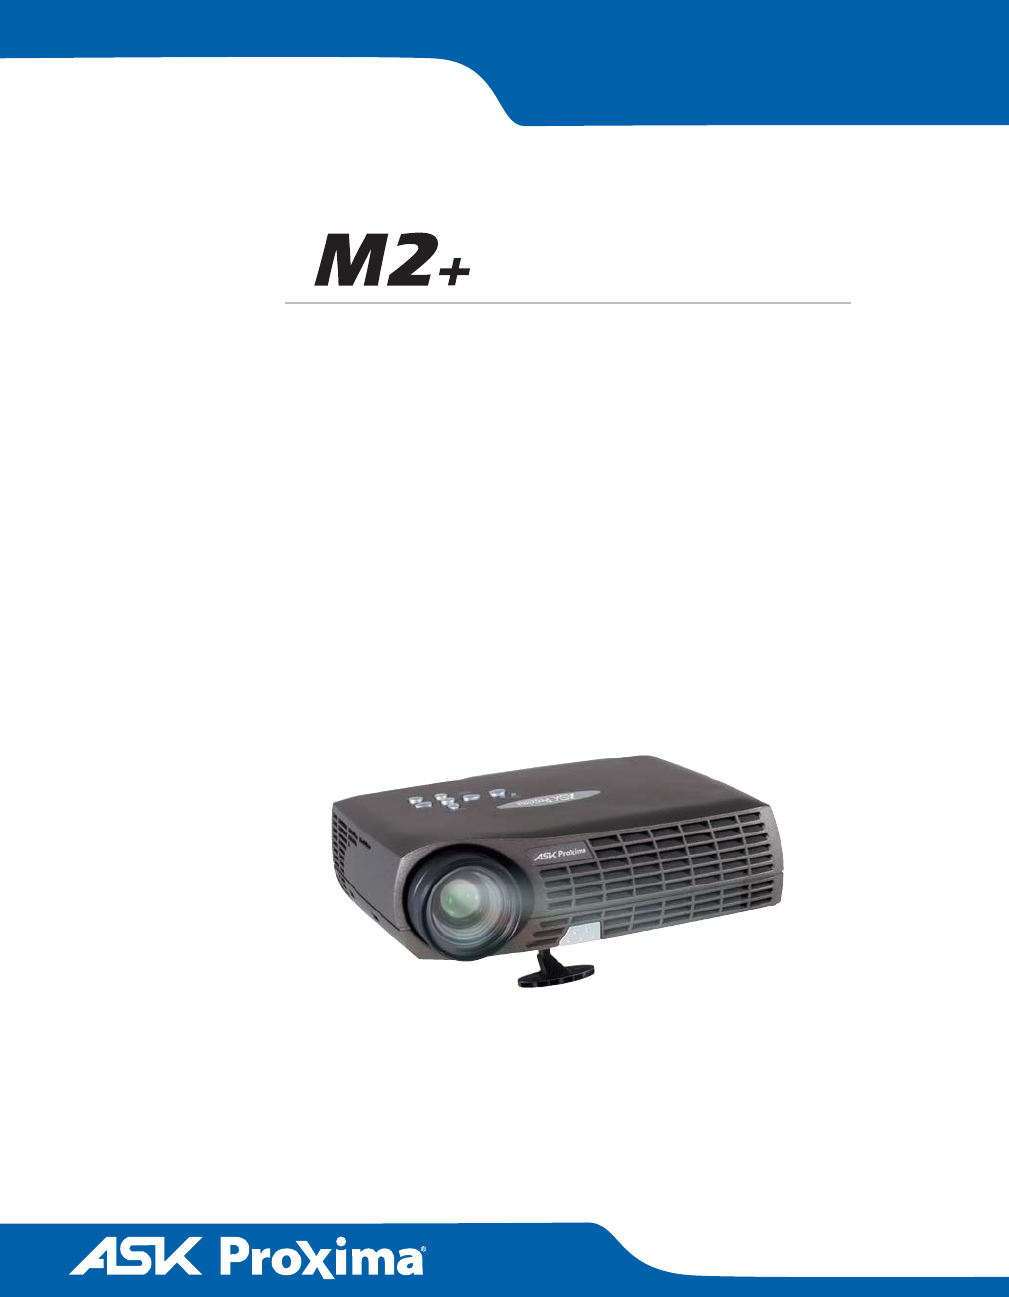 ask proxima projector m2 user guide manualsonline com rh office manualsonline com Ask Proxima Classroom Ask Proxima C450 Projector